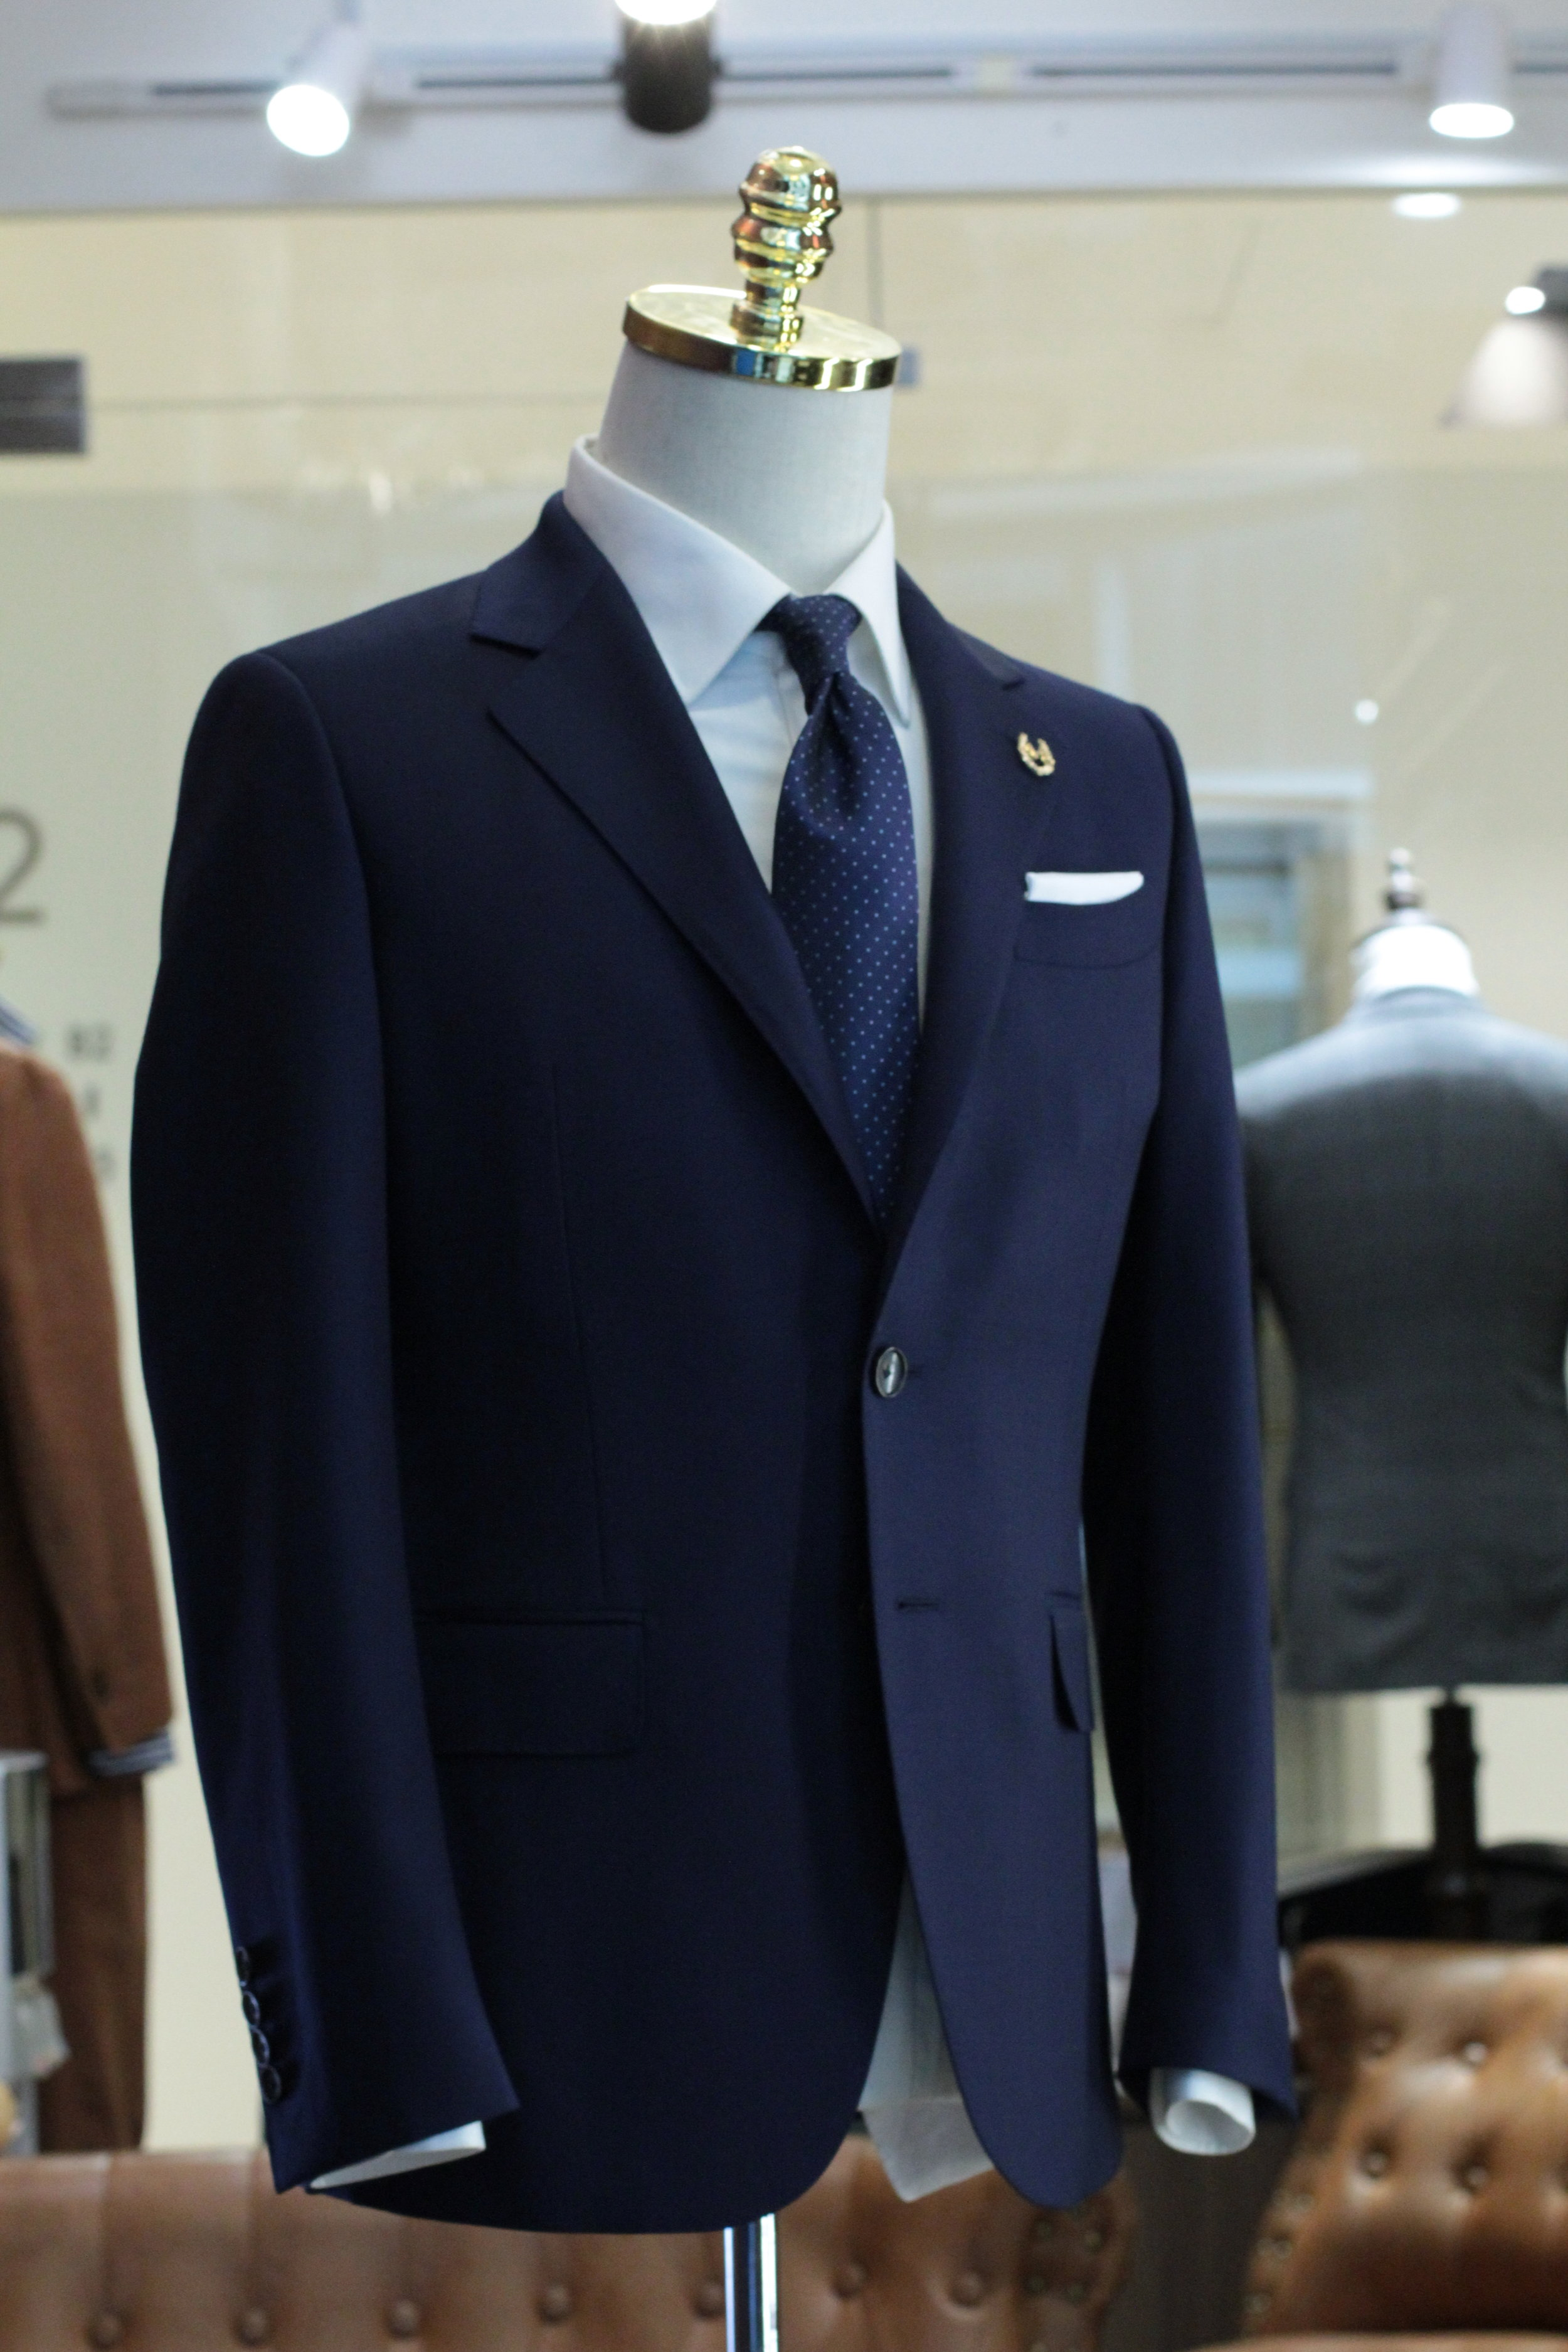 Made Suits Conan Notched Lapel Suit Navy Blue FILARTE Made to Measure Suit Side view.JPG